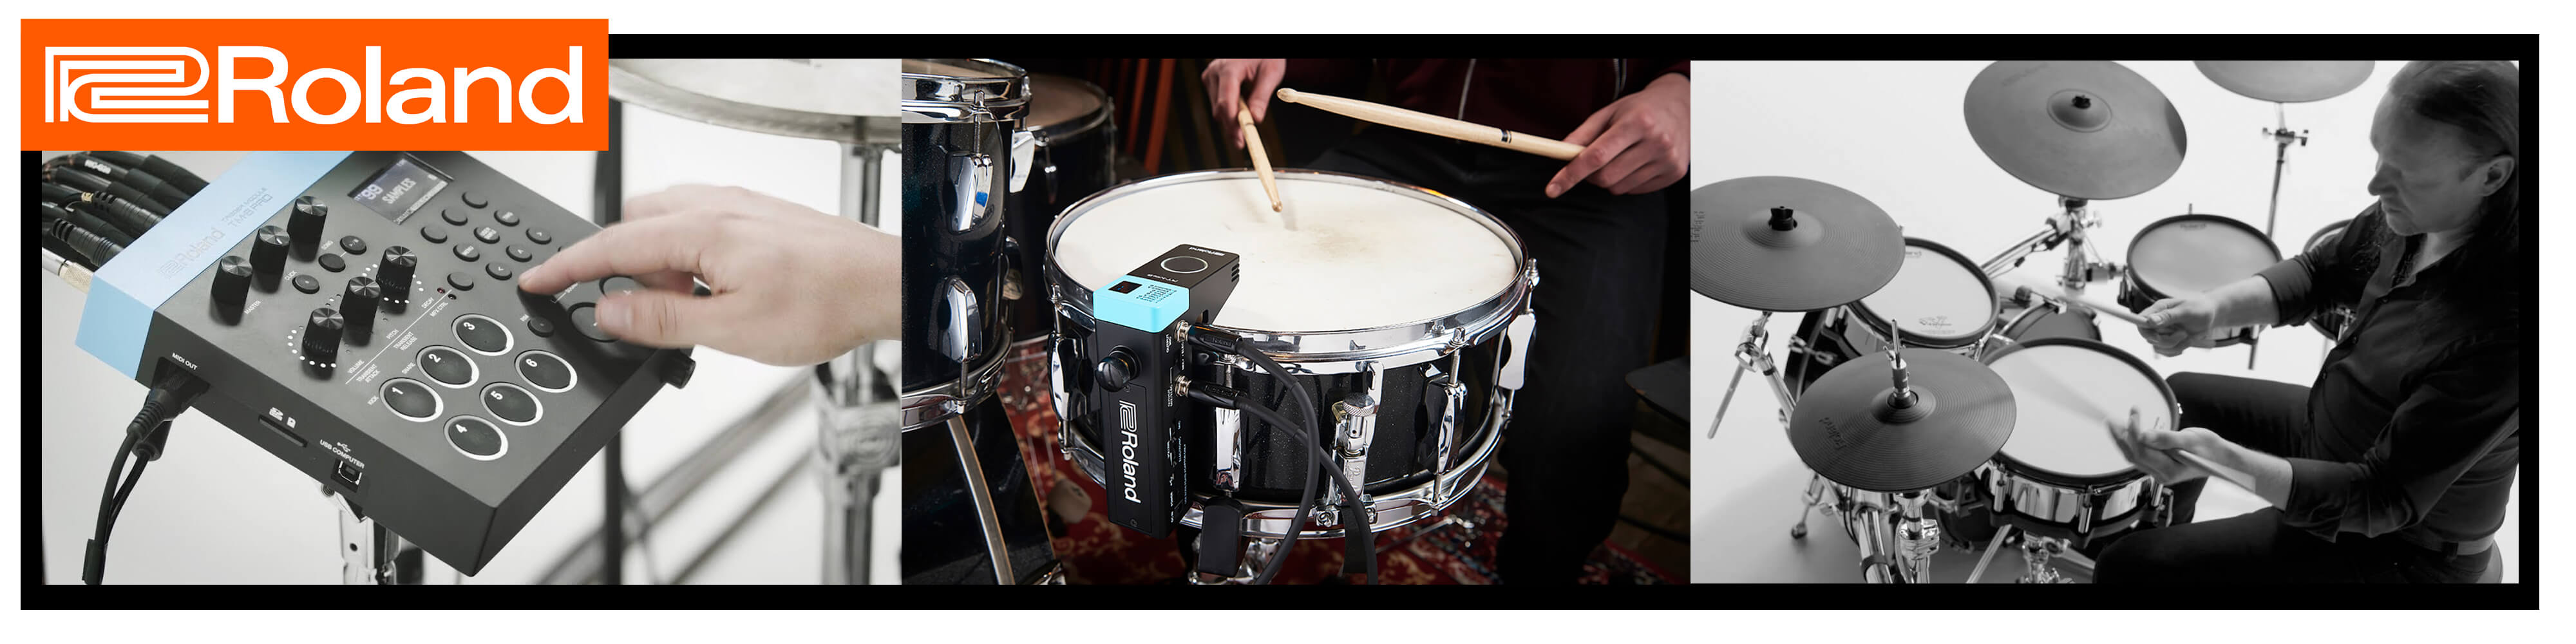 latest from namm roland hybrid drum triggers rich tone music. Black Bedroom Furniture Sets. Home Design Ideas